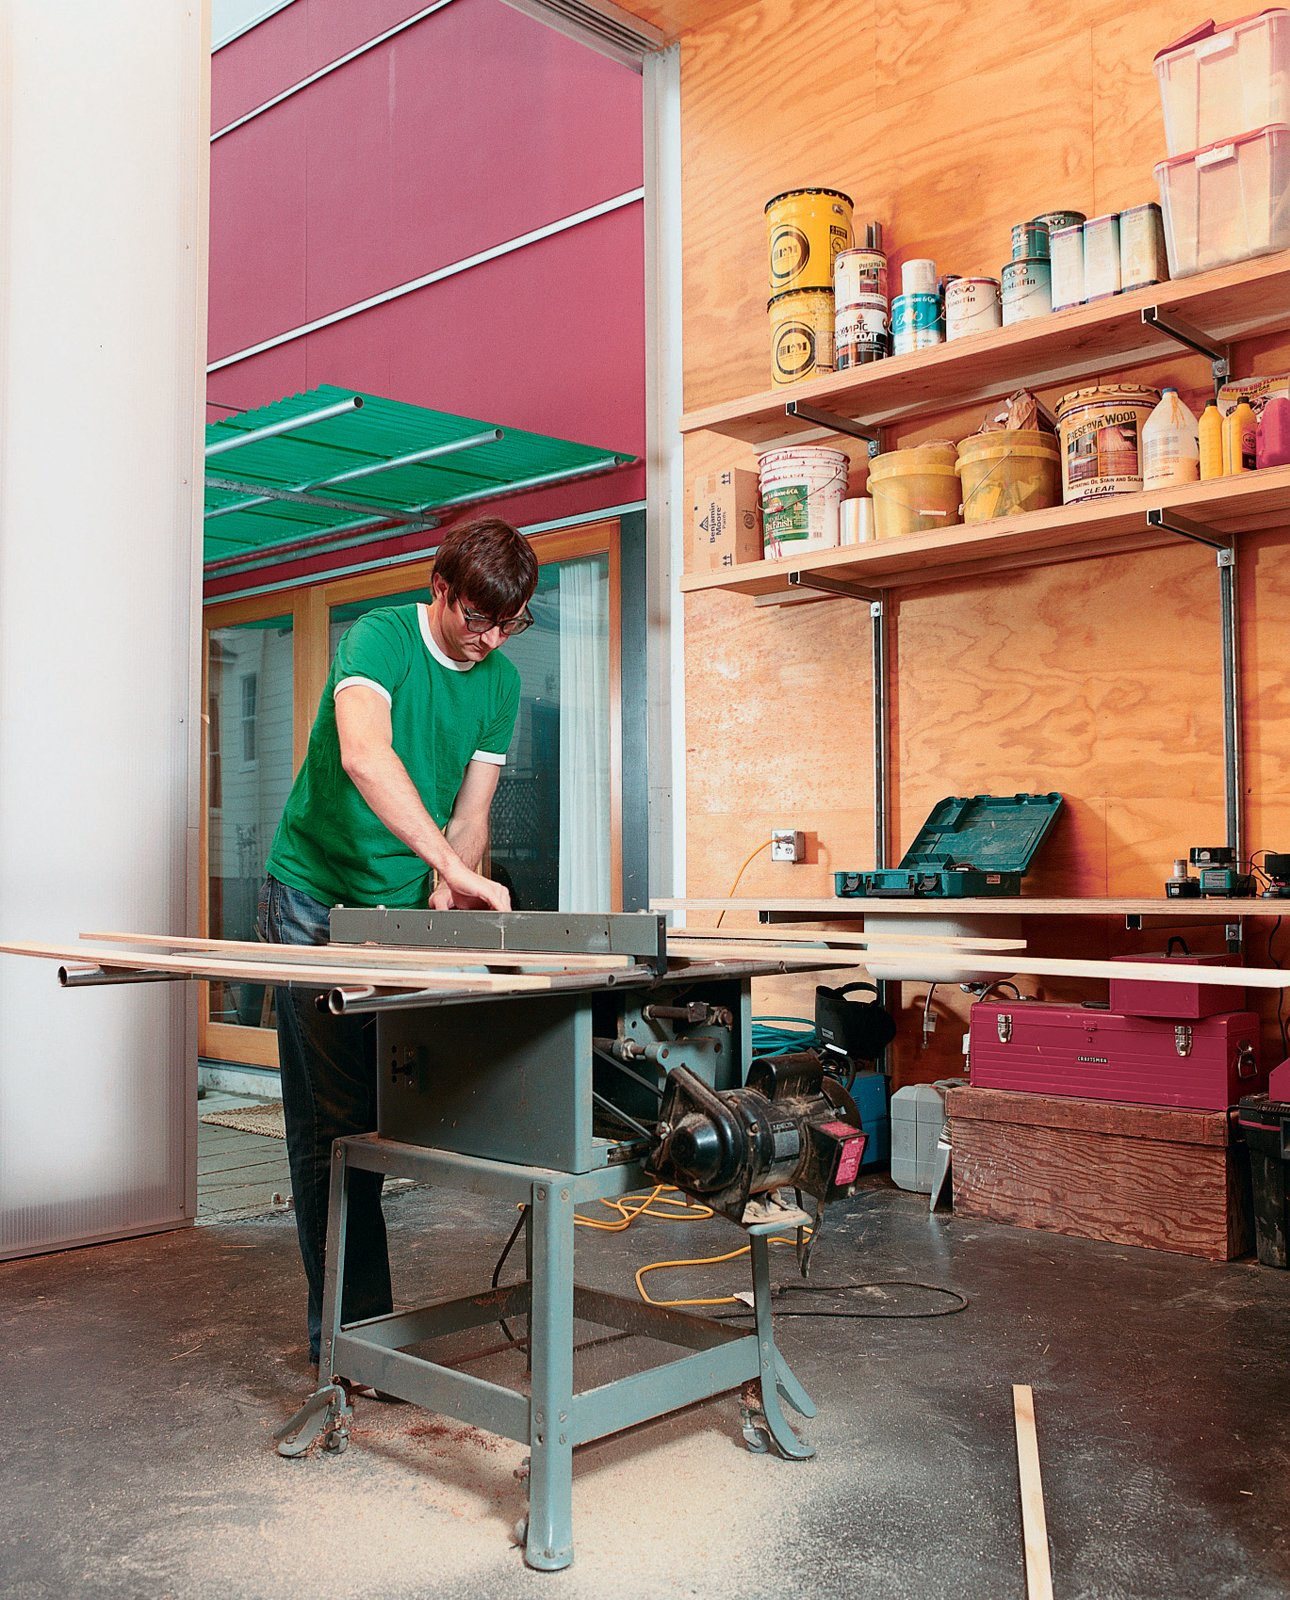 Sarti recently completed the studio addition to his house, giving him another 300 square feet of space. Now, all future home-improvement projects can be completed entirely onsite, though late-night table-saw usage might leave his neighbors sleepless in Seattle.  Photo 3 of 8 in Halving It All